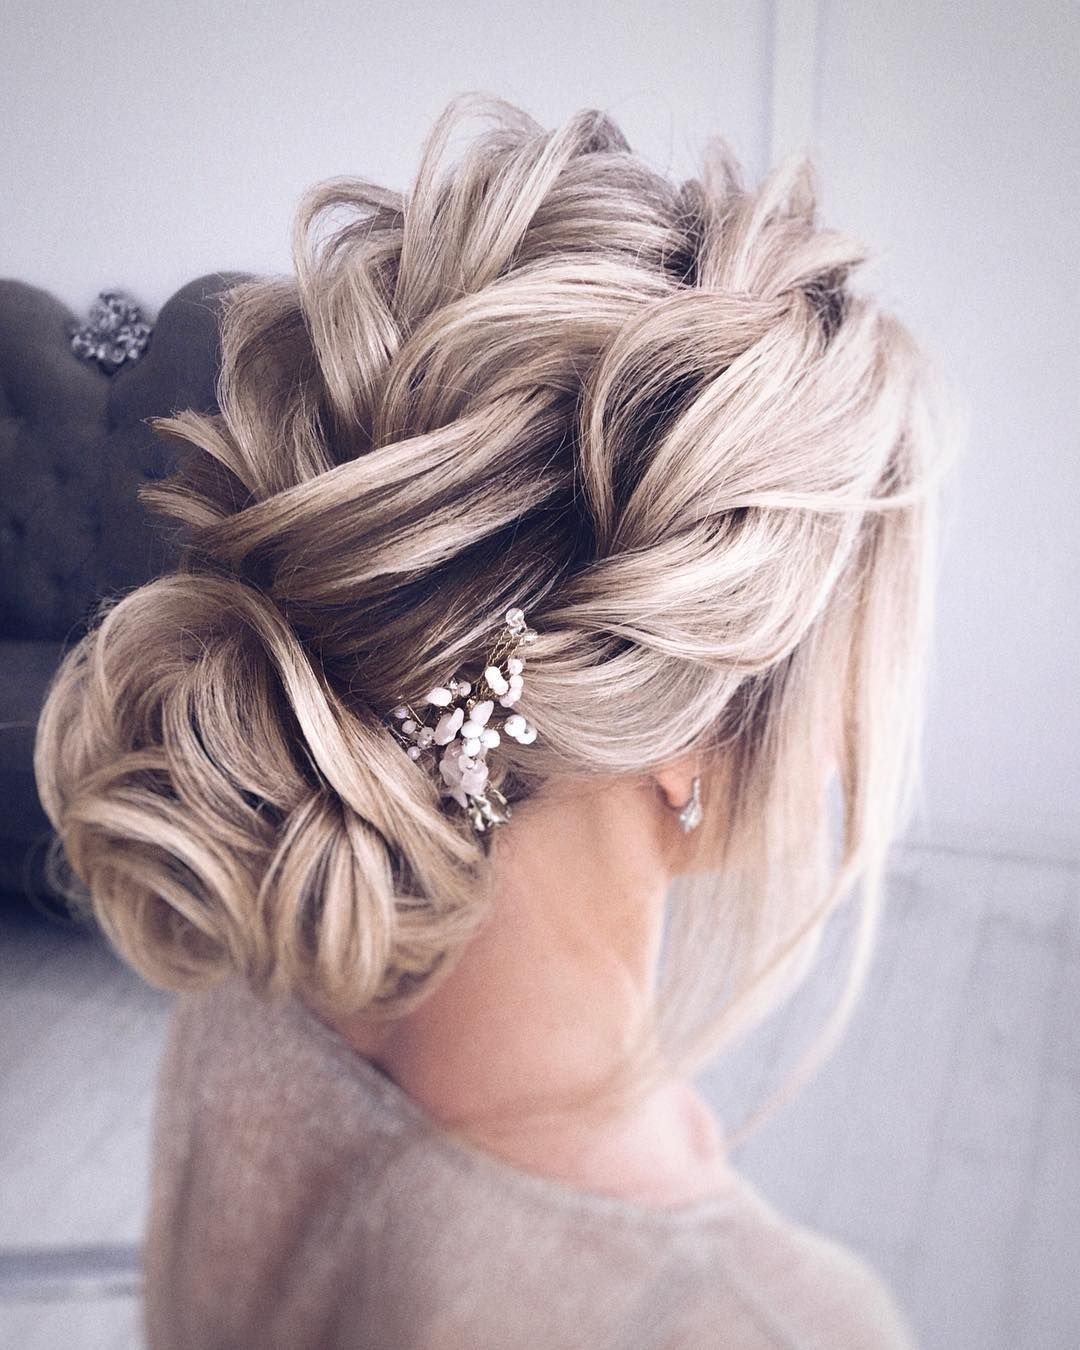 Updo Braided Updo Hairstyle Swept Back Bridal Hairstyle Updo Hairstyles Wedding Hairstyles Weddinghair Braided Hairstyles Updo Hair Styles Long Hair Styles